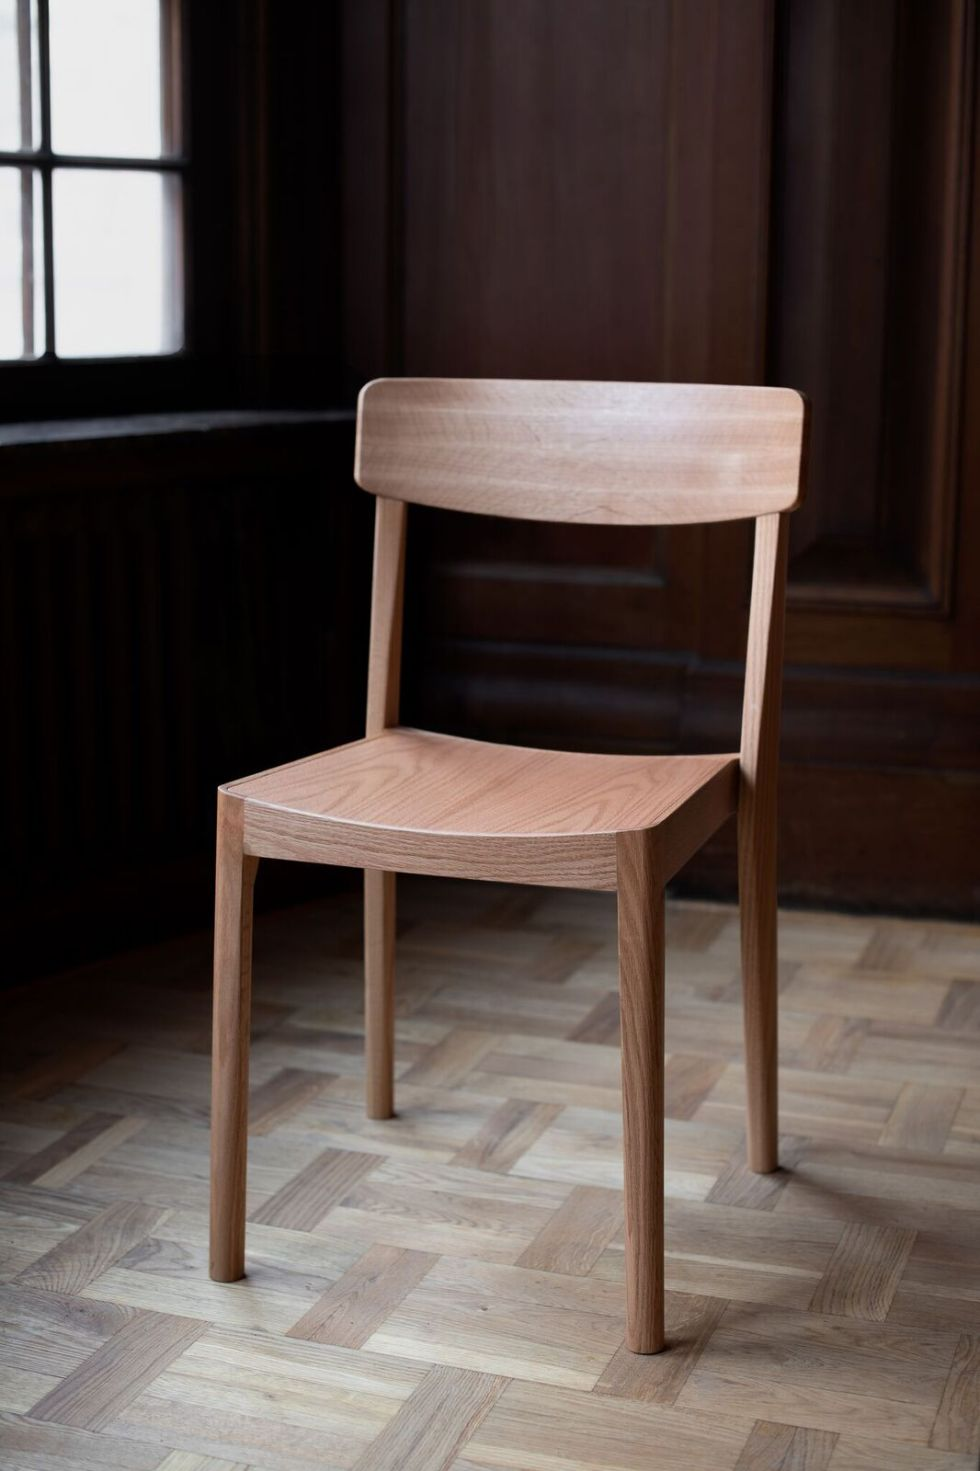 carved chair staffan holm les vrais